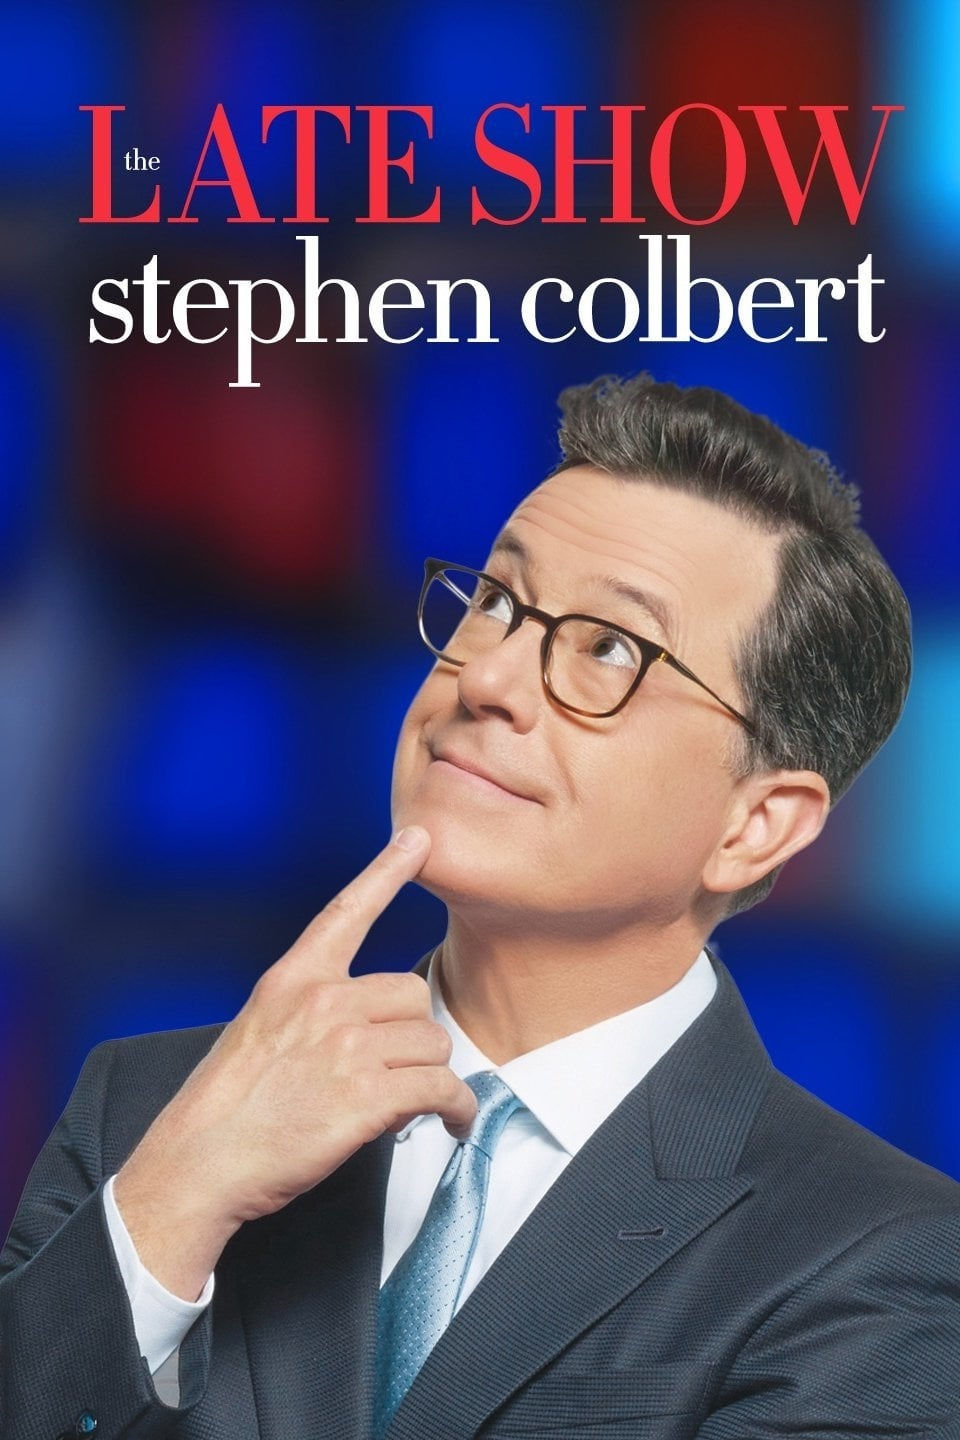 The Late Show with Stephen Colbert Season 4